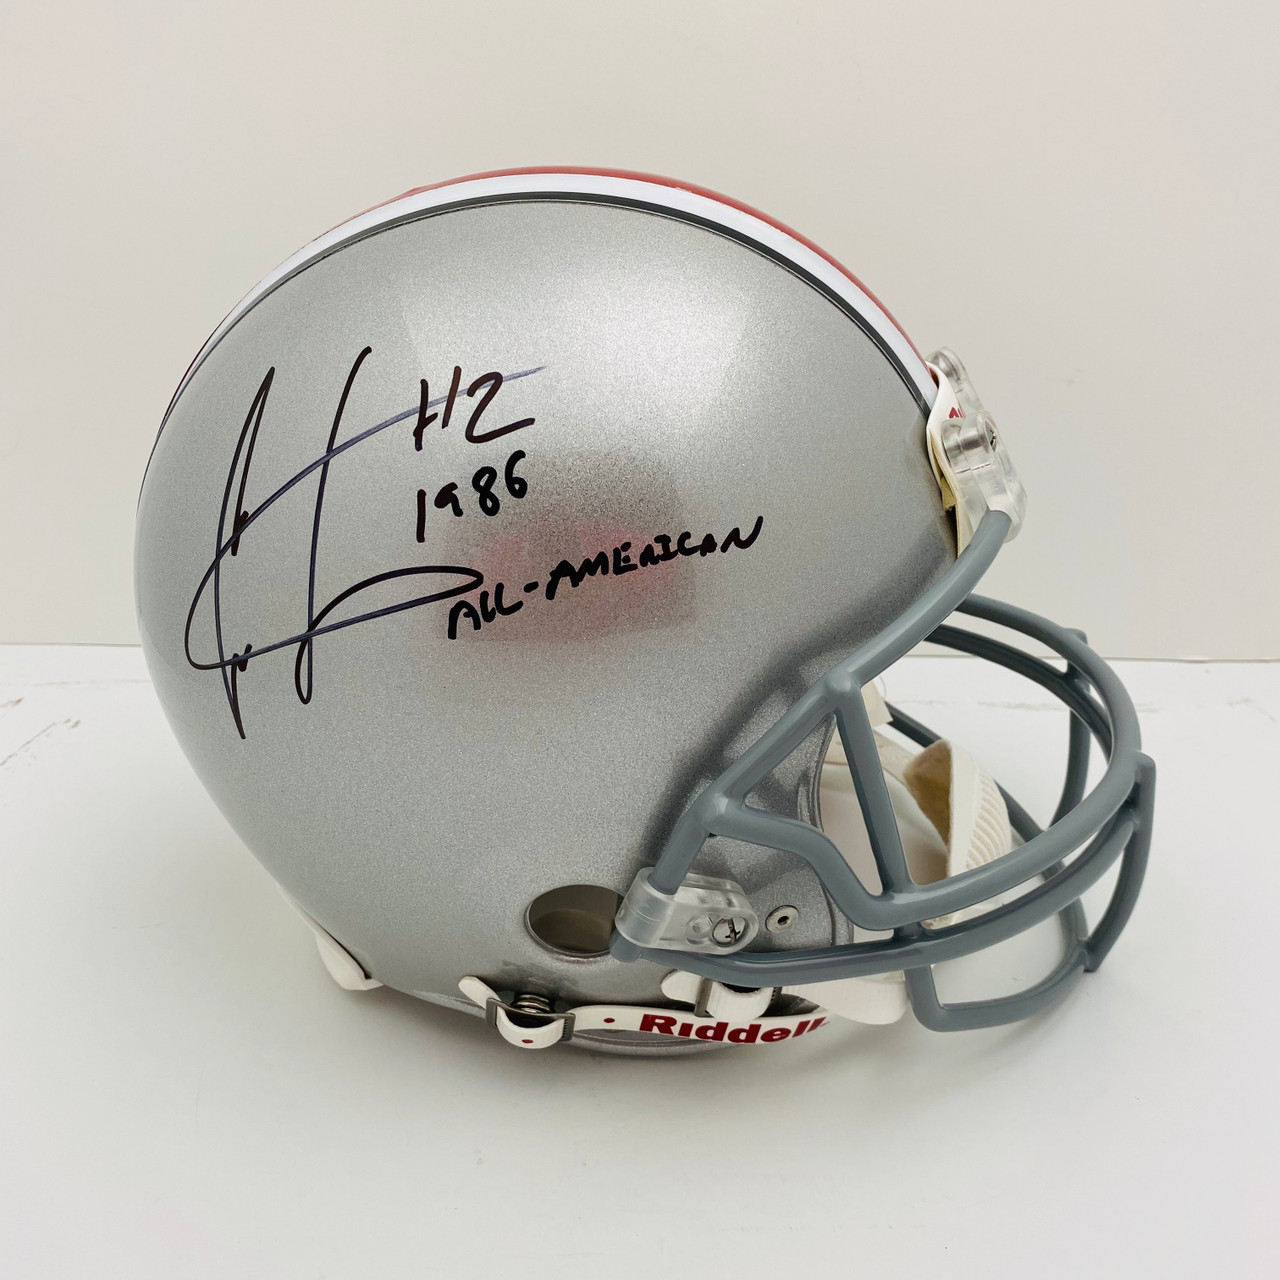 Cris Carter Ohio State Buckeyes '1986 All-American' Autographed Authentic Helmet - PSA Authentic